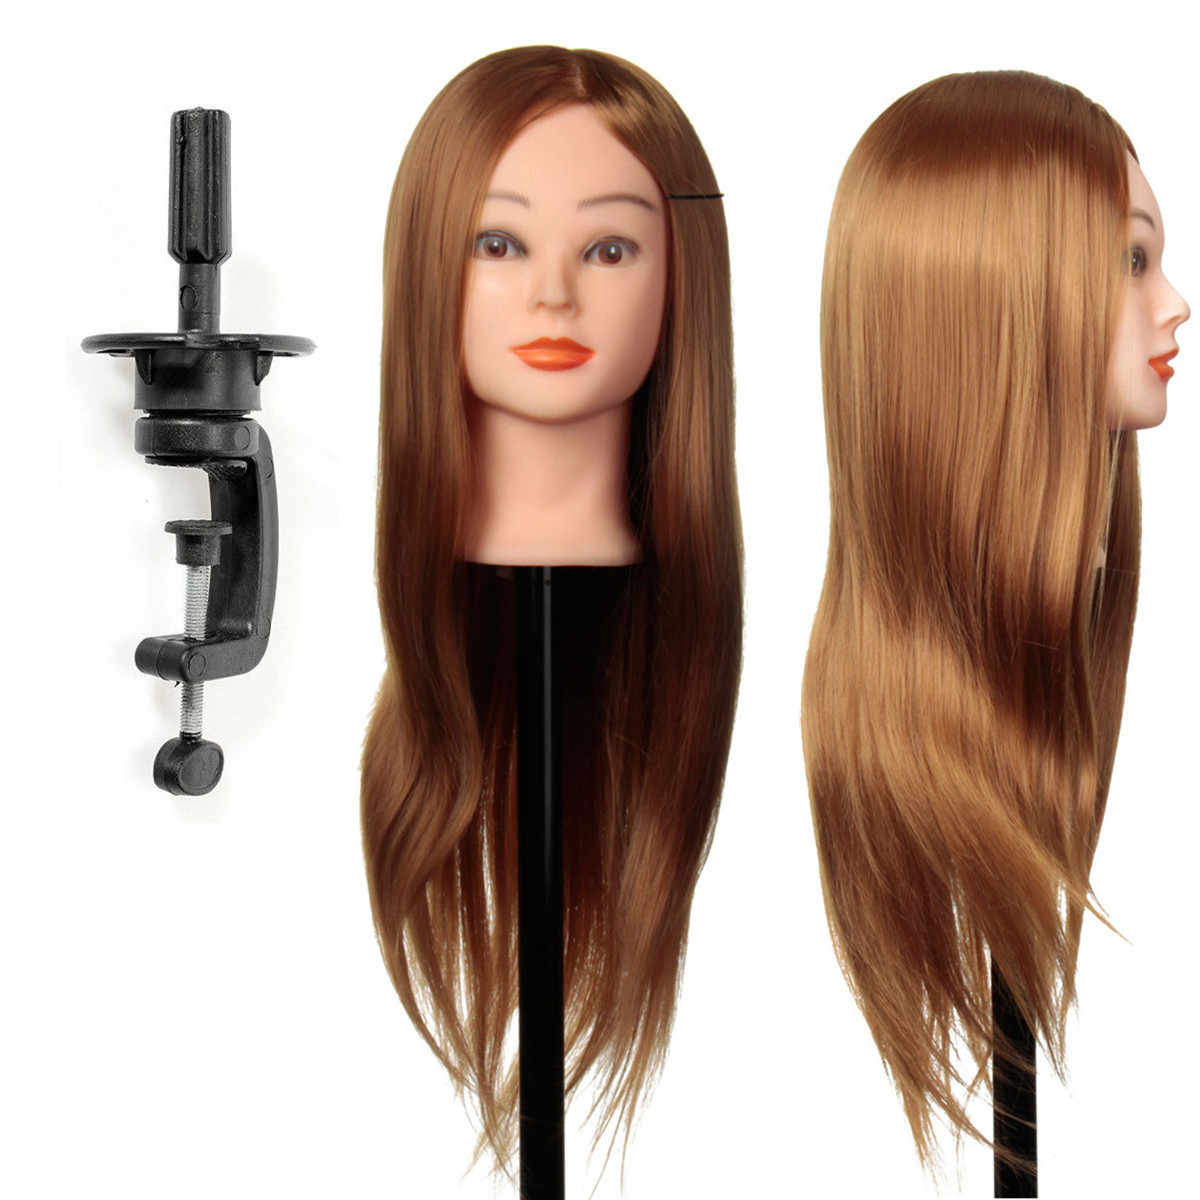 24 Inch 30 Real Natural Hair Training Mannequin Head With